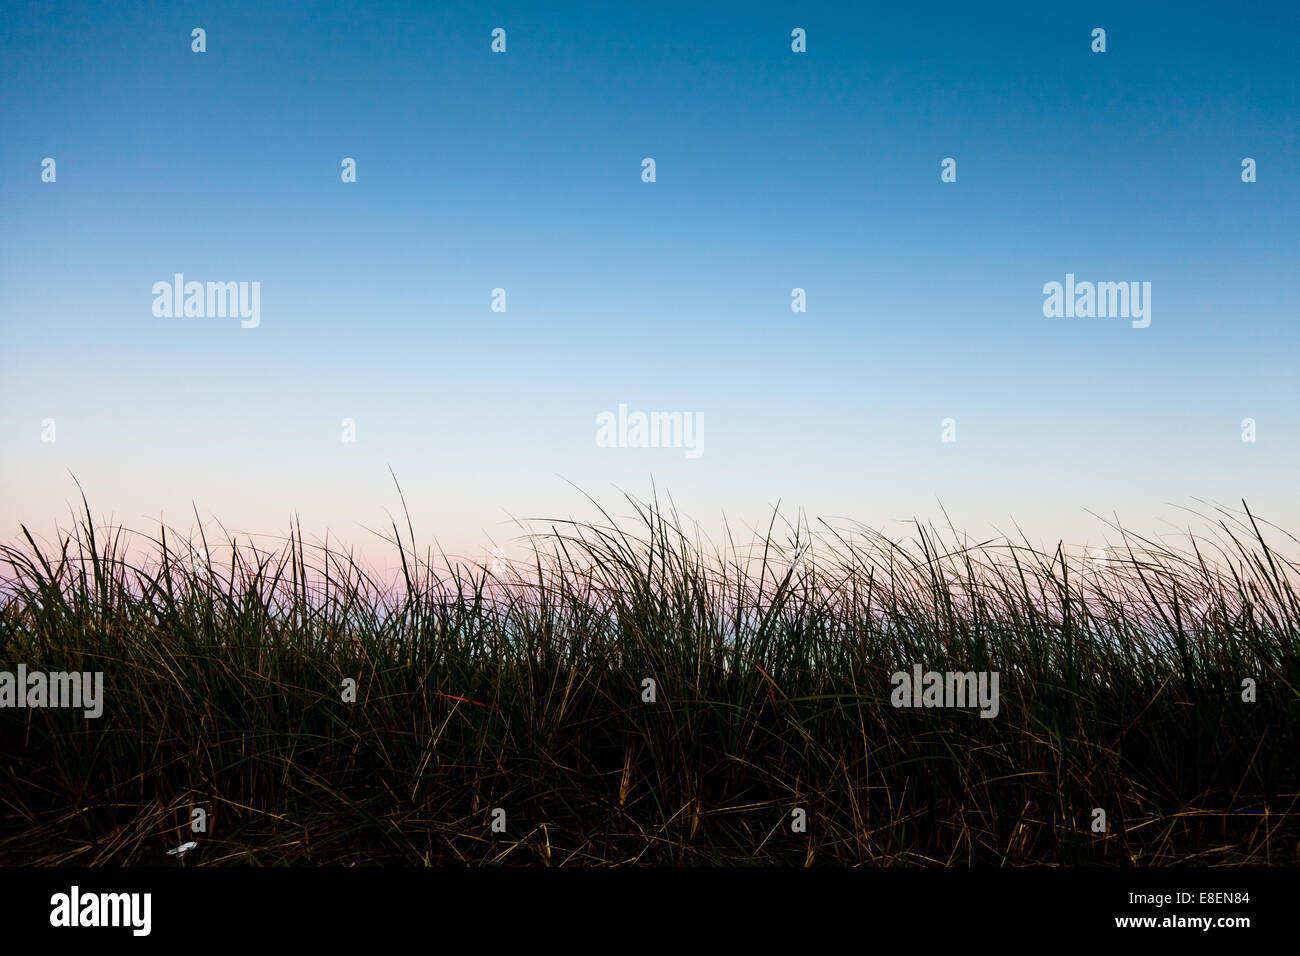 Long grass in silhouette with room for text - Stock Image